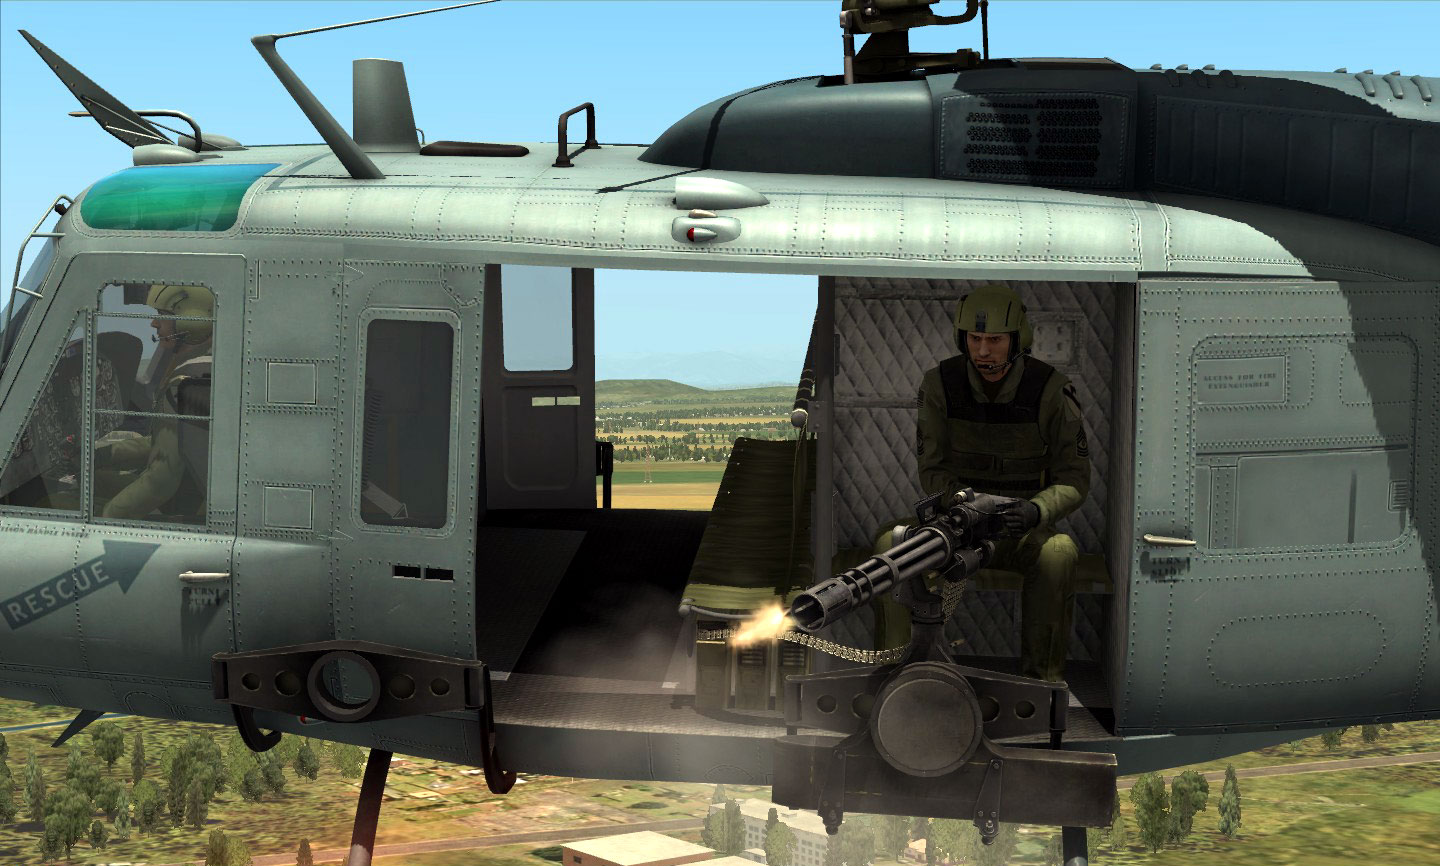 I was anxiously waiting for this official update because I heard that -finally- the AI door gunners of the Huey were given brains eyes and trigger fingers. & Real and Simulated Wars: DCS Updated to Version 1.2.7 - Now ... pezcame.com